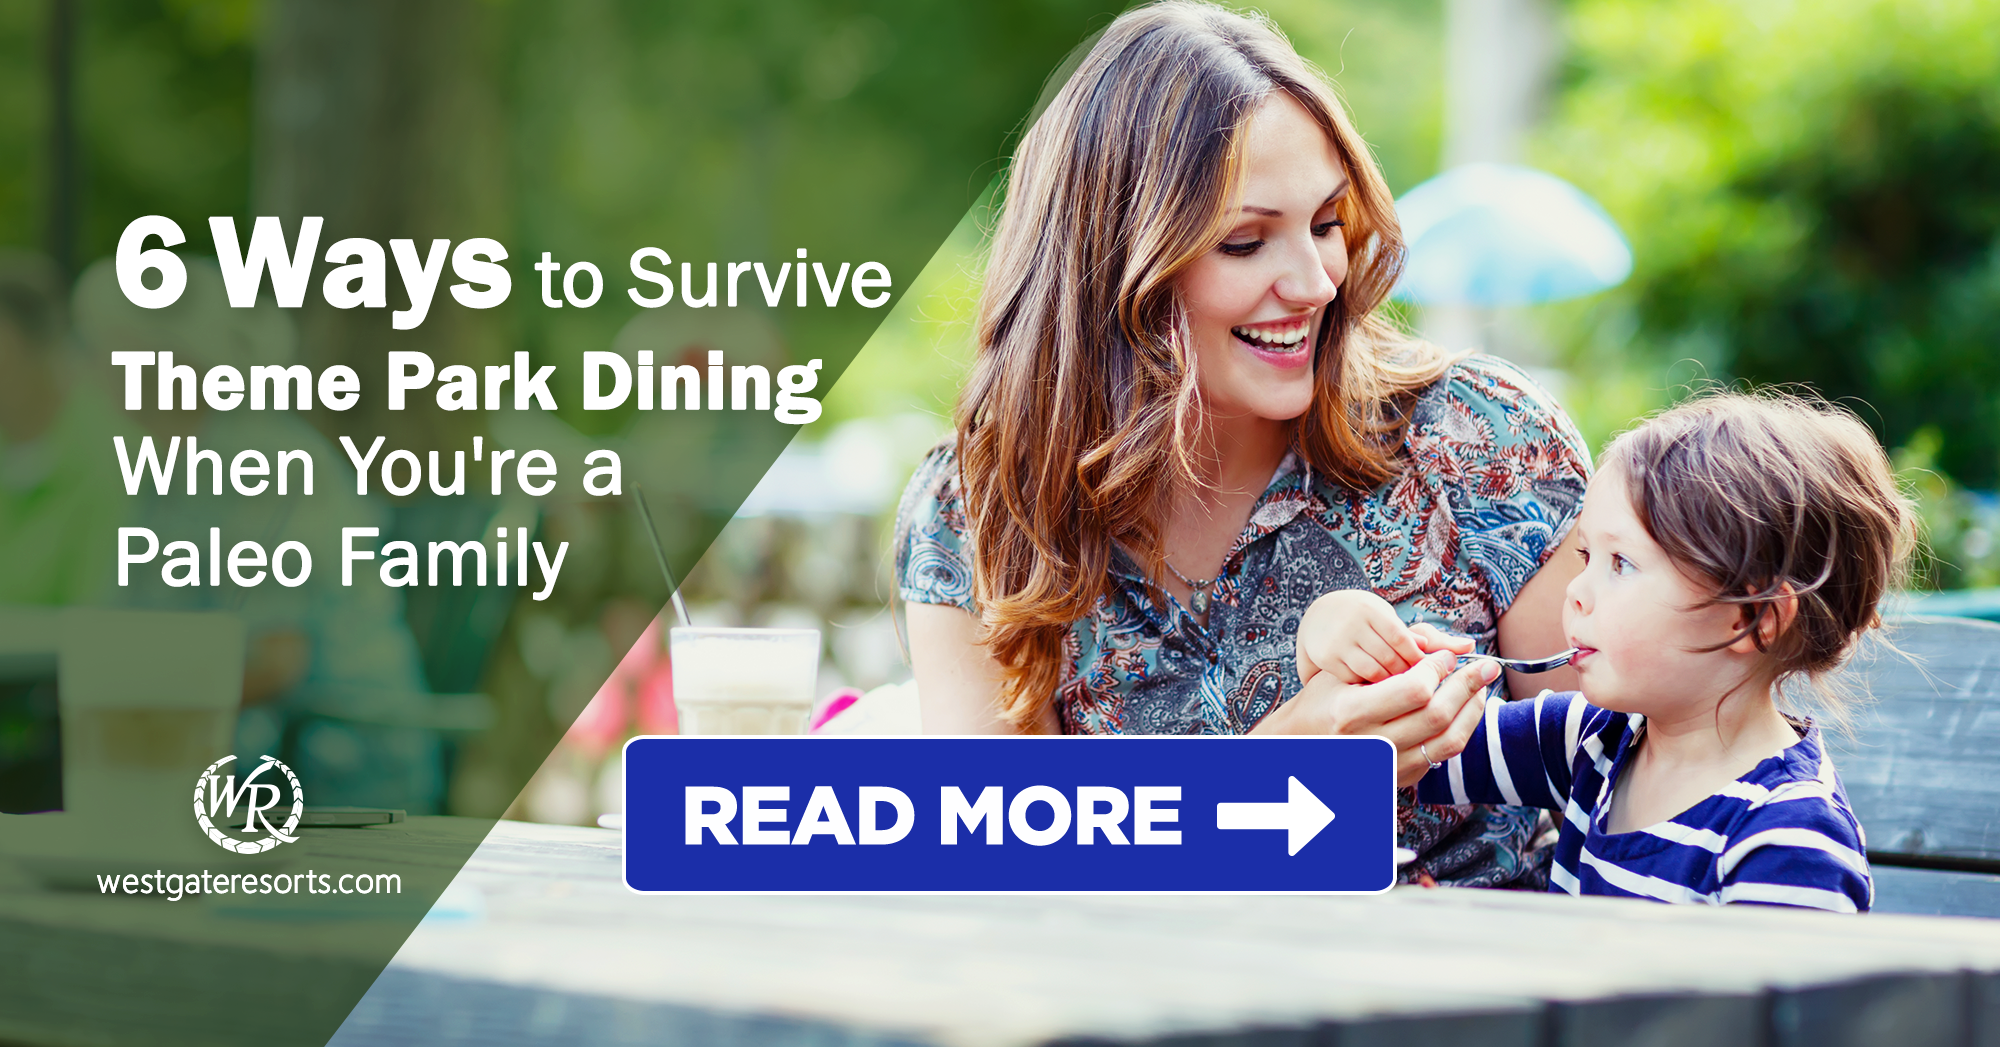 6 Ways to Survive Theme Park Dining When You're a Paleo Family | Traveling Paleo Famlies | Healthy Eating While On Vacation